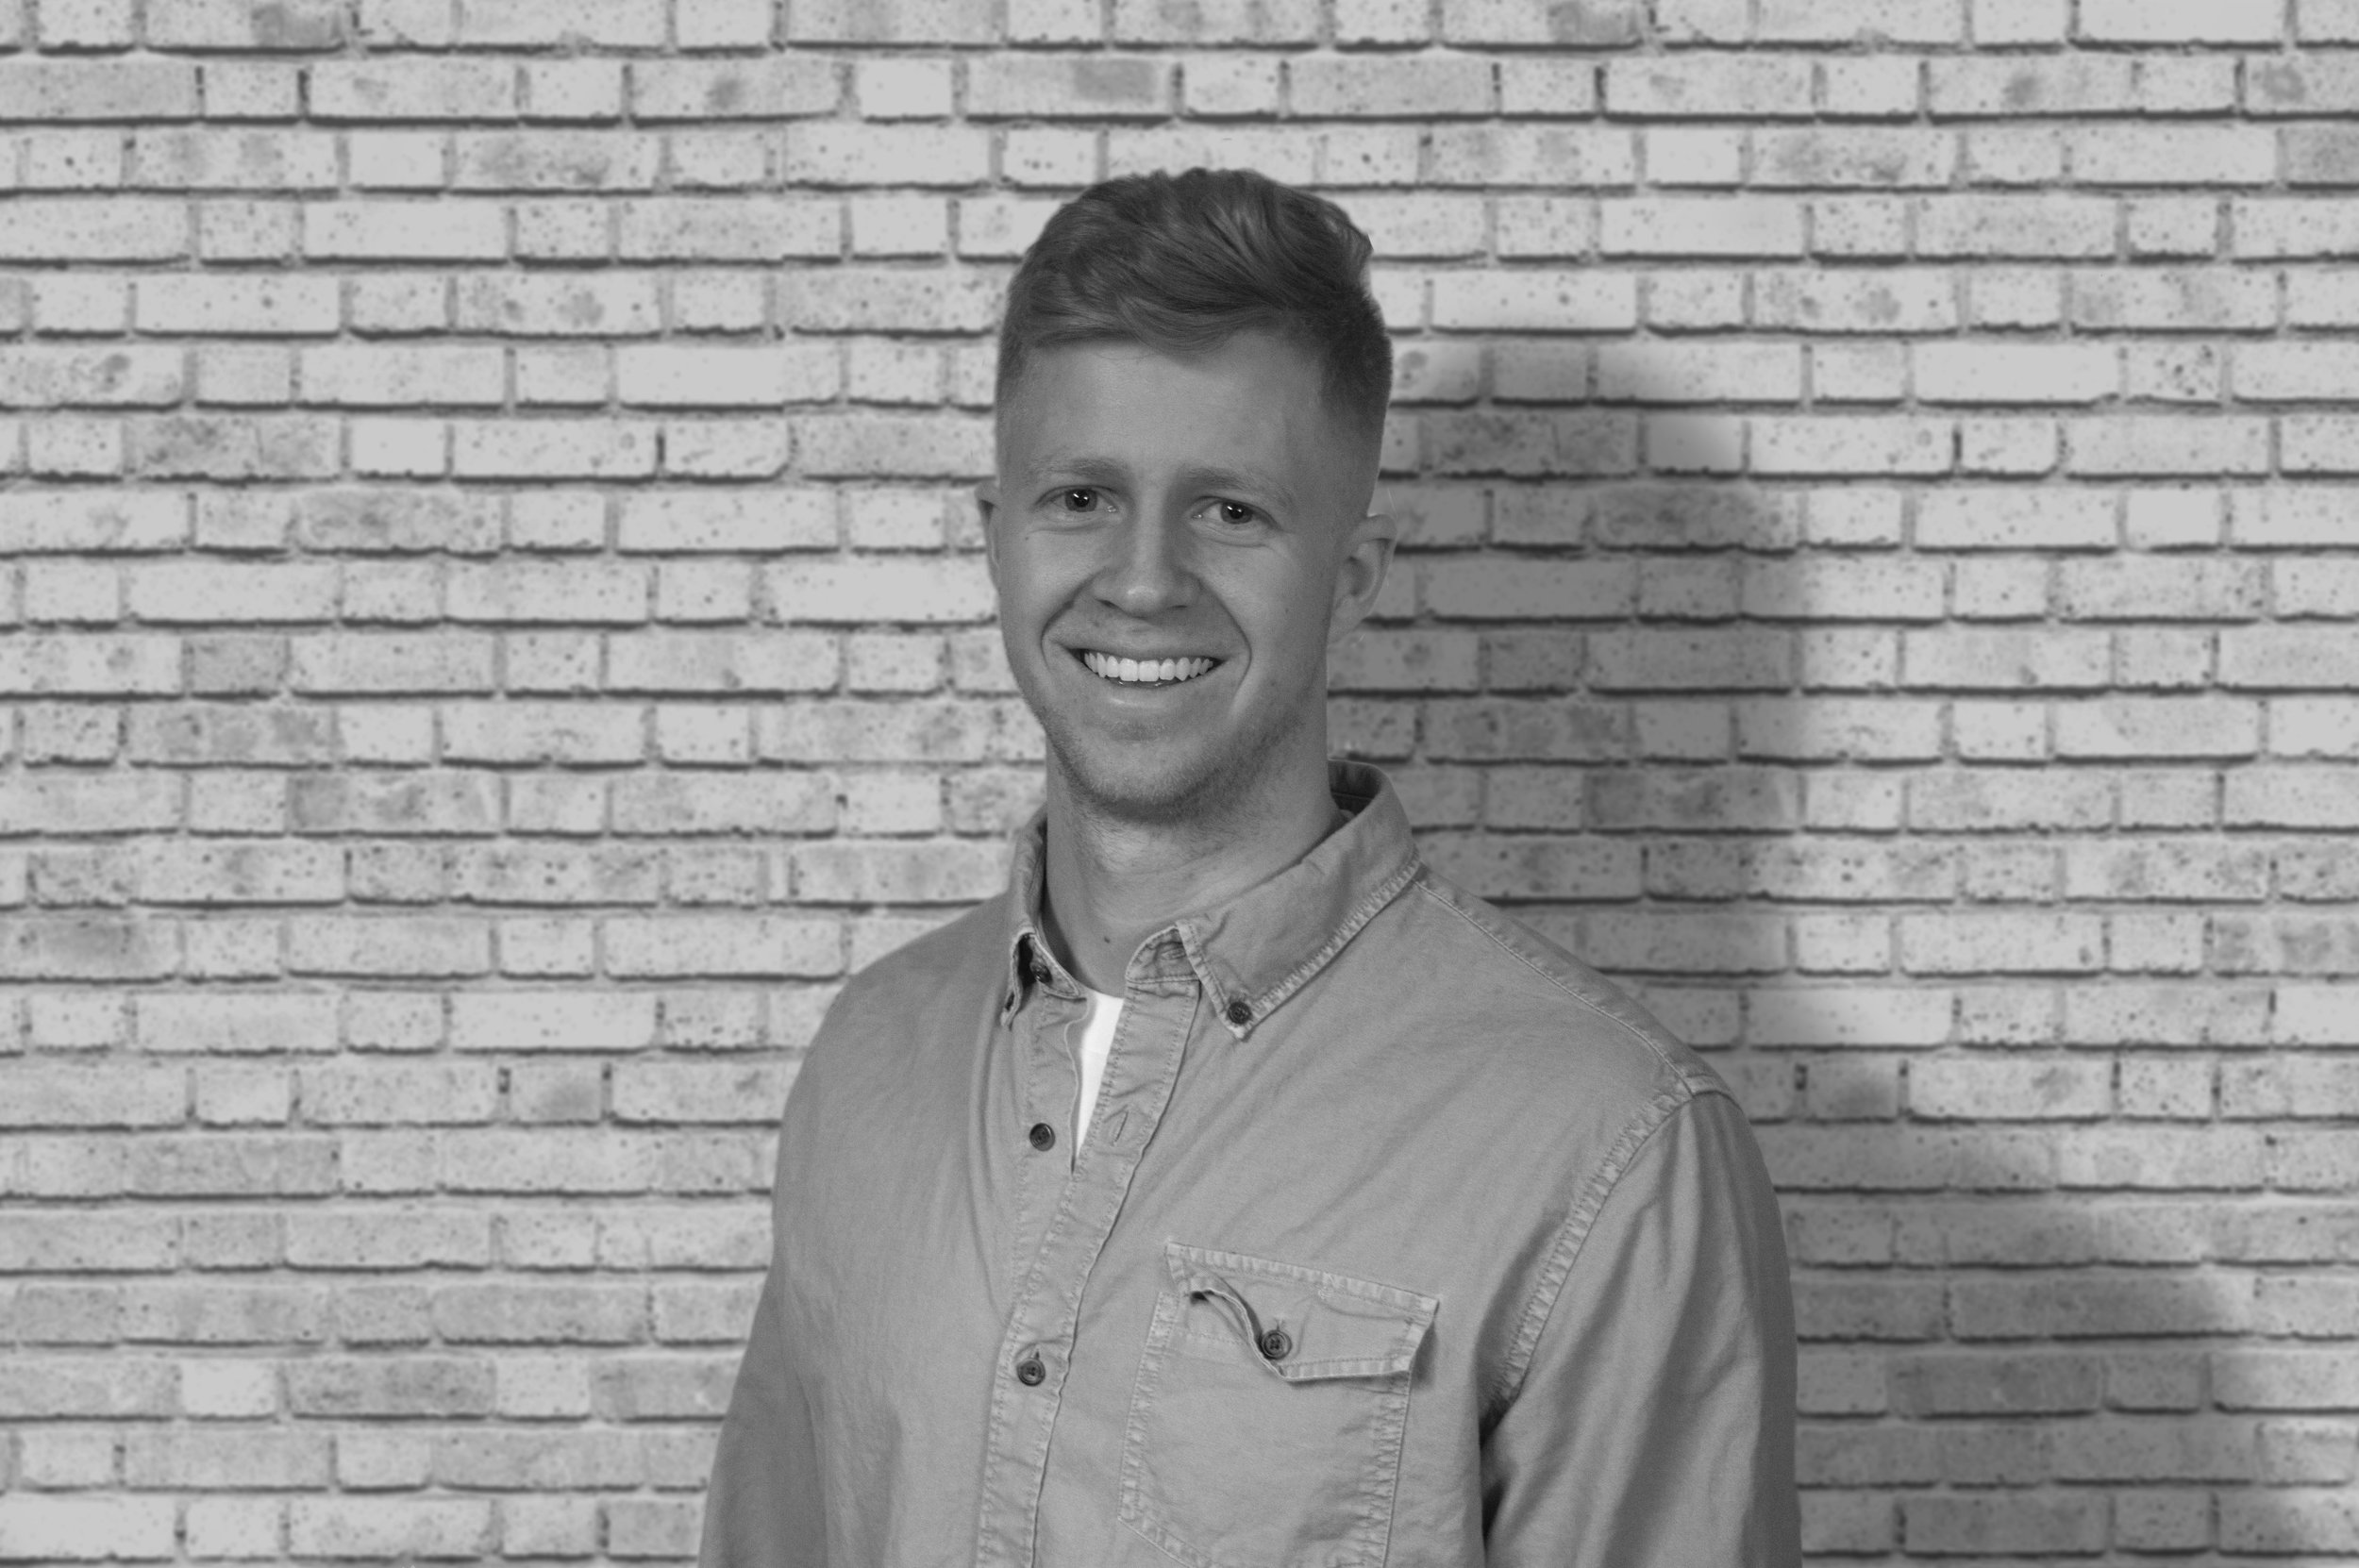 Nick Lager   Nick graduated from the Bachelors of Science in Architecture program from the University of Minnesota in 2018. He is looking forward to expand his knowledge of architecture and is excited to be starting the first part of his architectural career with HCM before going back to pursue his Masters degree.